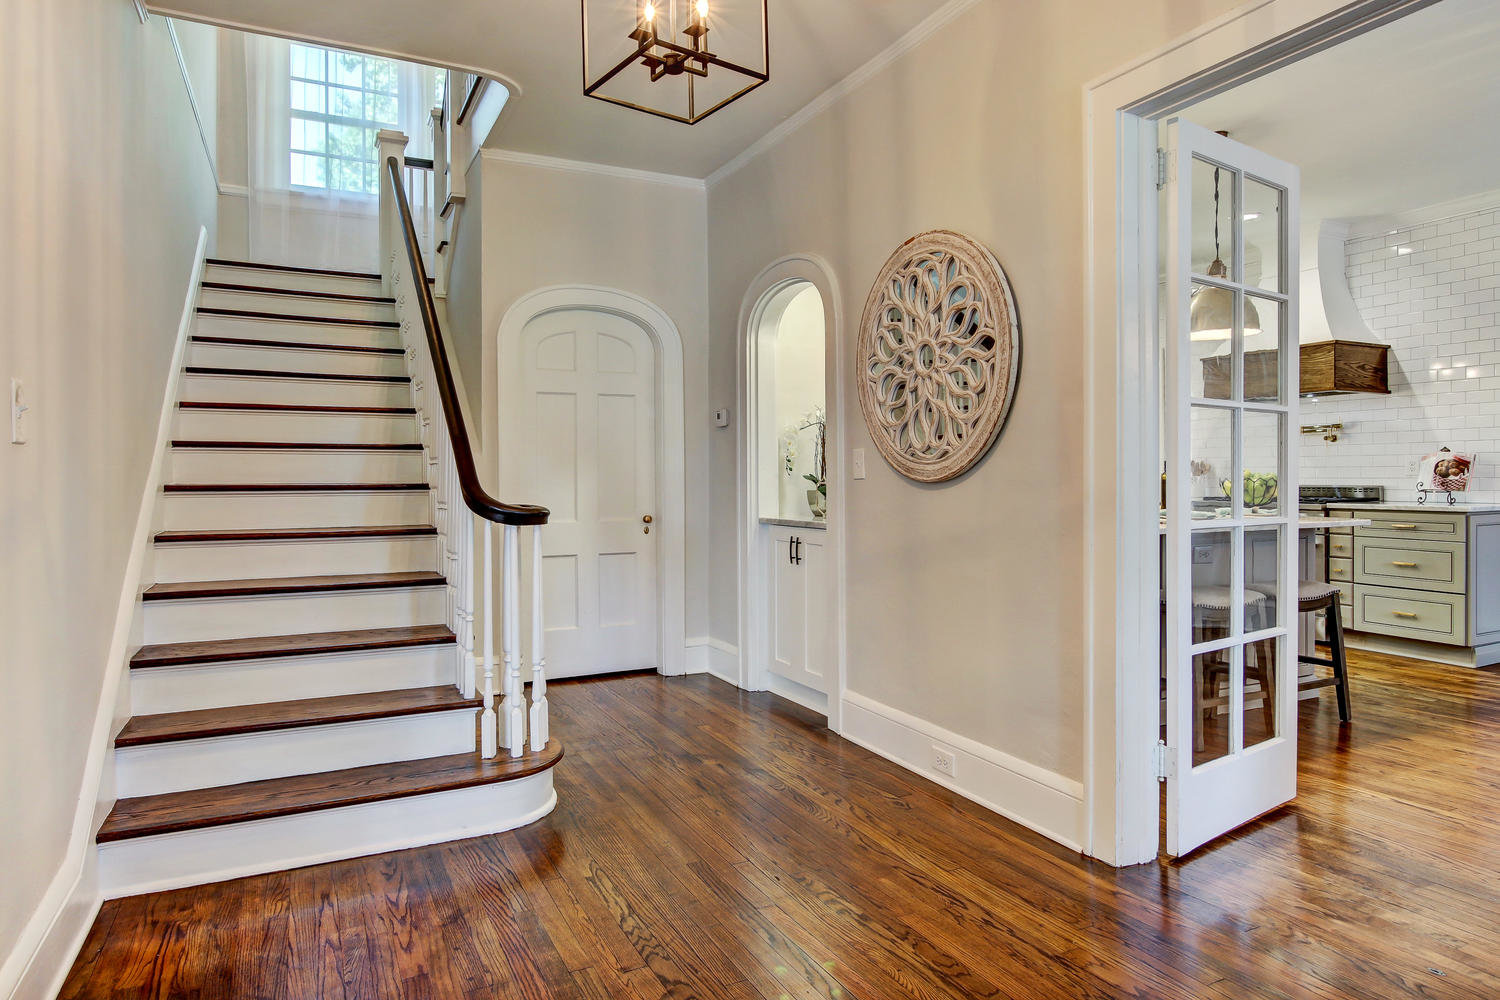 Interior foyer of 1524 Seminole Road in Jacksonville with views of kitchen and stairs